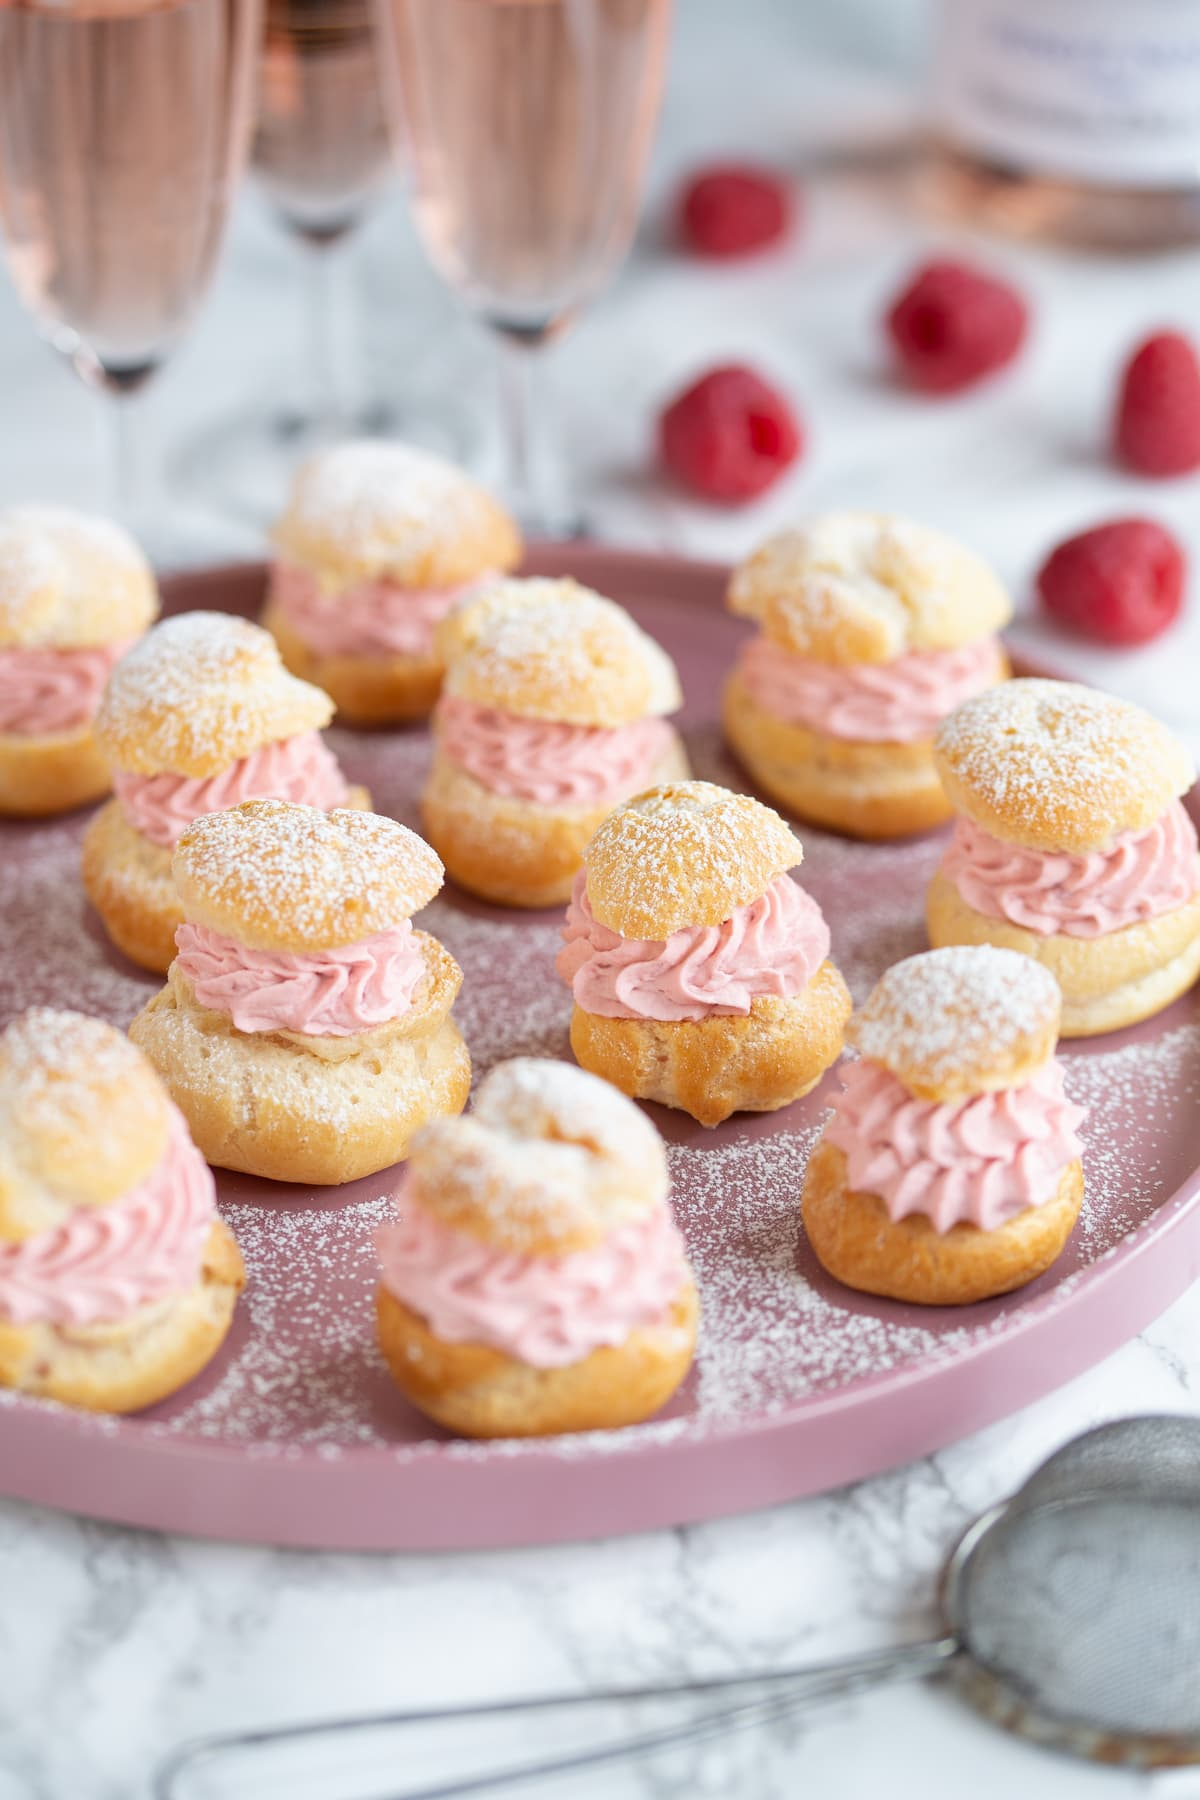 Homemade choux pastry puffs filled with raspberry cream.